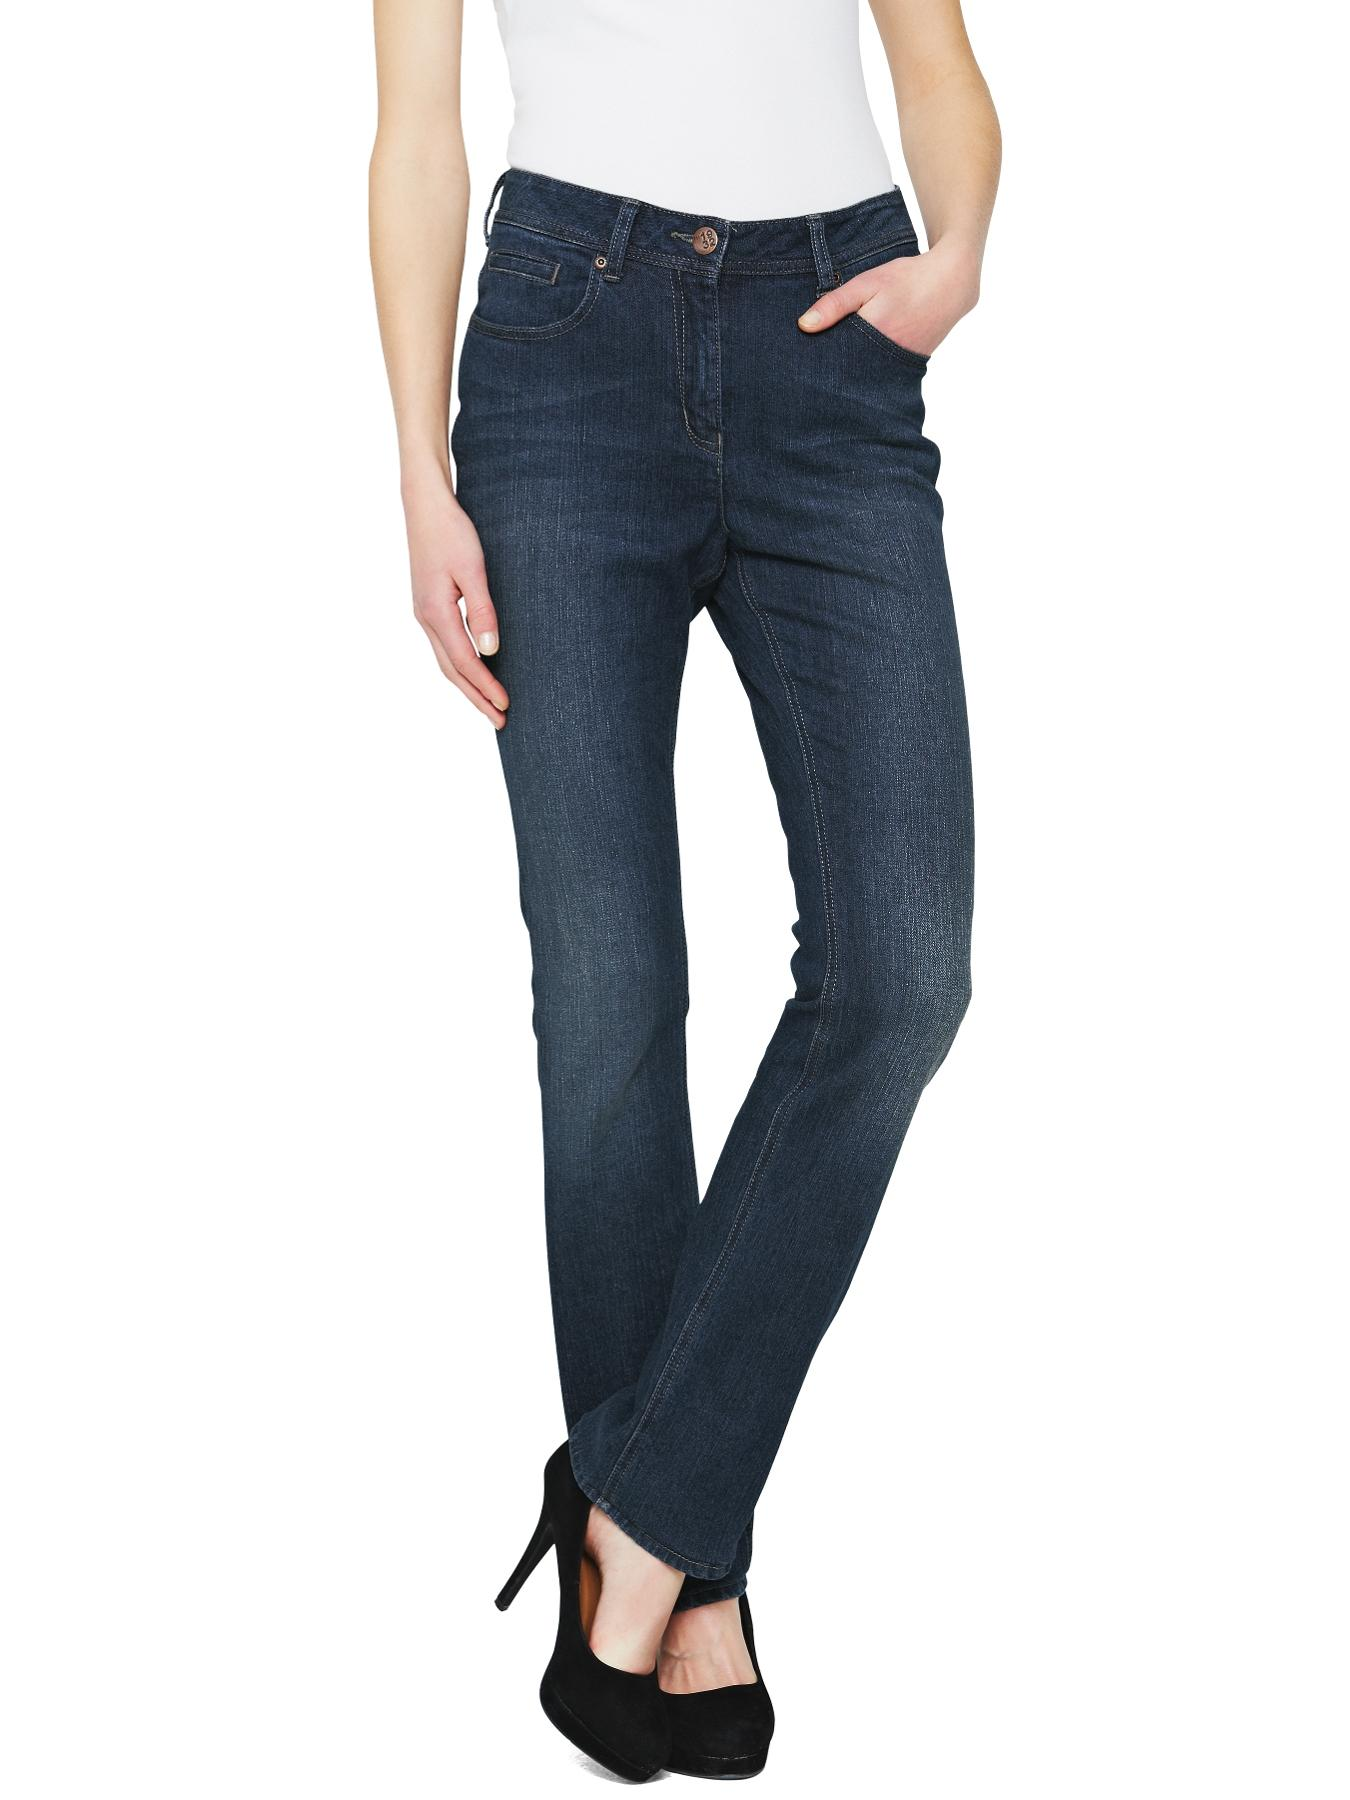 South High Rise Pippa Straight Leg Jeans - Indigo, Black,Indigo